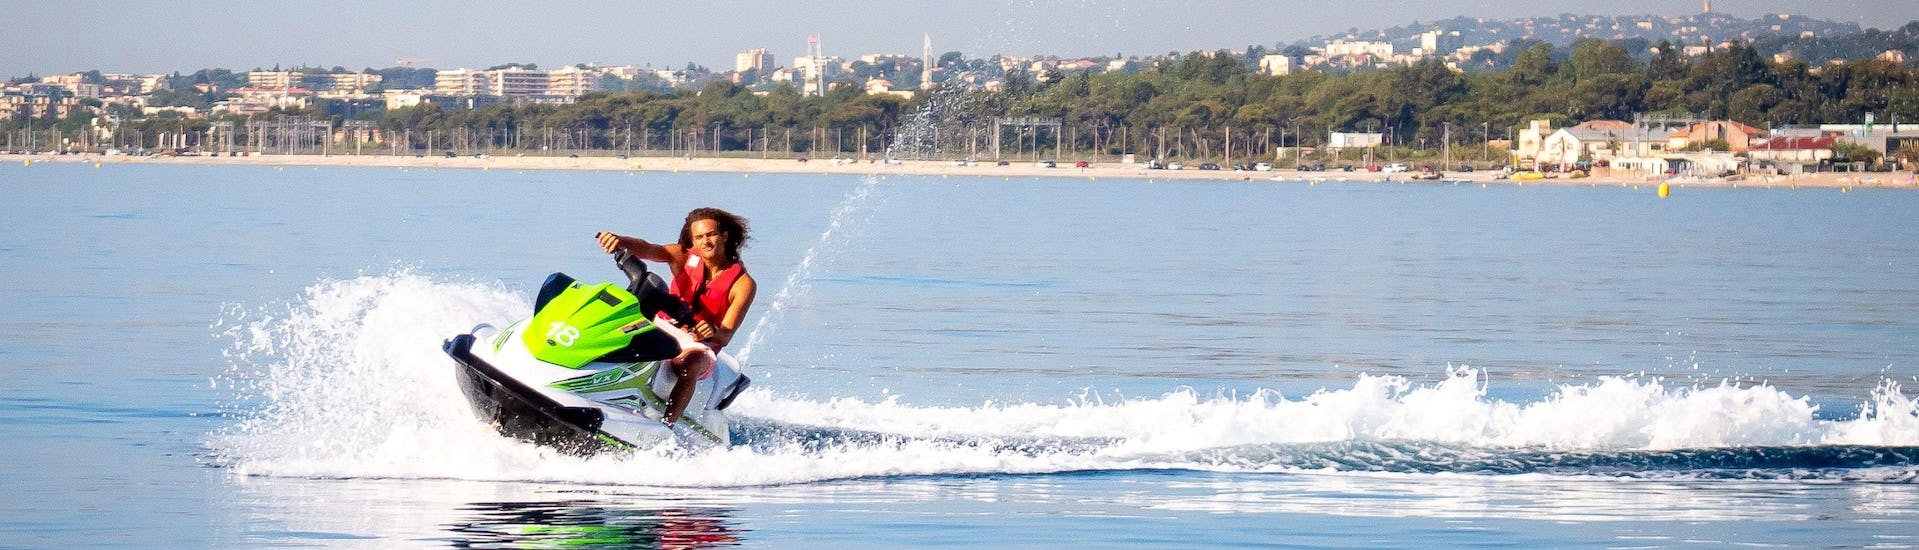 A man is having fun while jet skiing during his tour with Jet Ski Hire in Cagnes-sur-Mer with Plage des Marines.